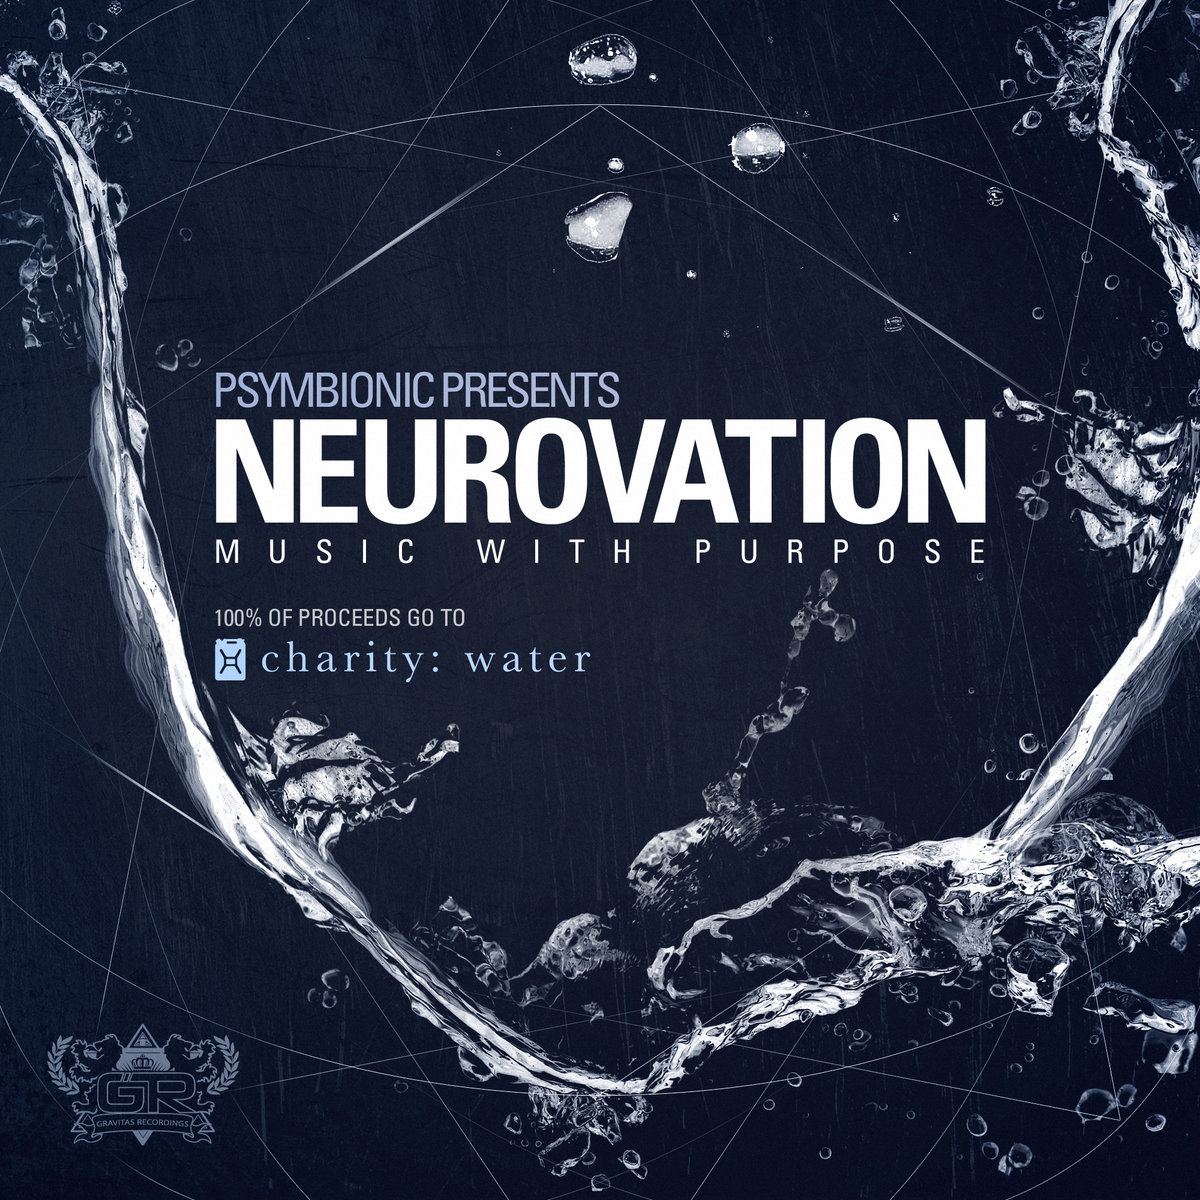 Unlimited Gravity - Cataplessa @ 'Psymbionic Presents: Neurovation' album (cryptex, glitch hop)